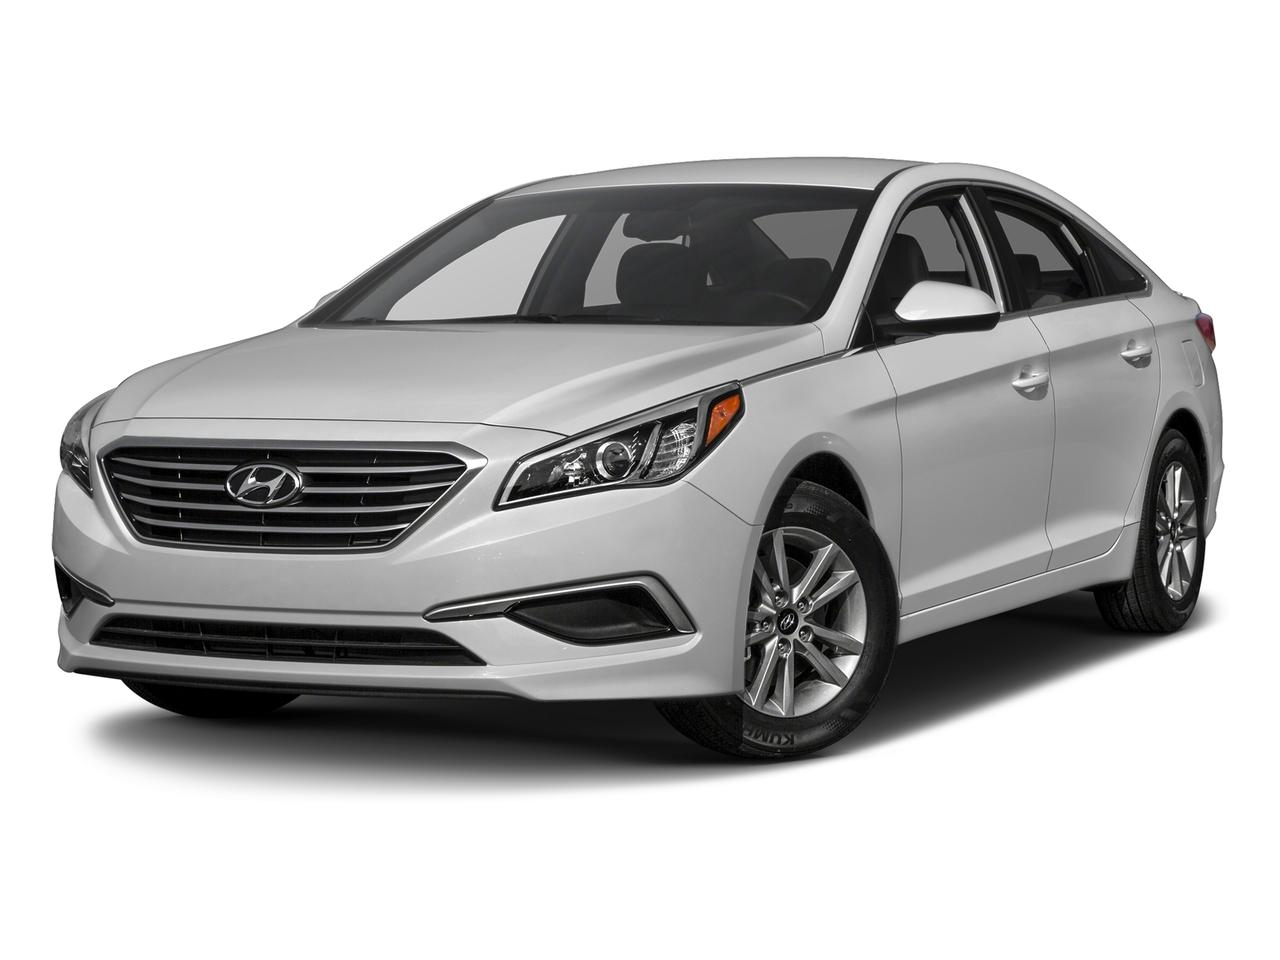 2017 Hyundai Sonata Vehicle Photo in Zelienople, PA 16063